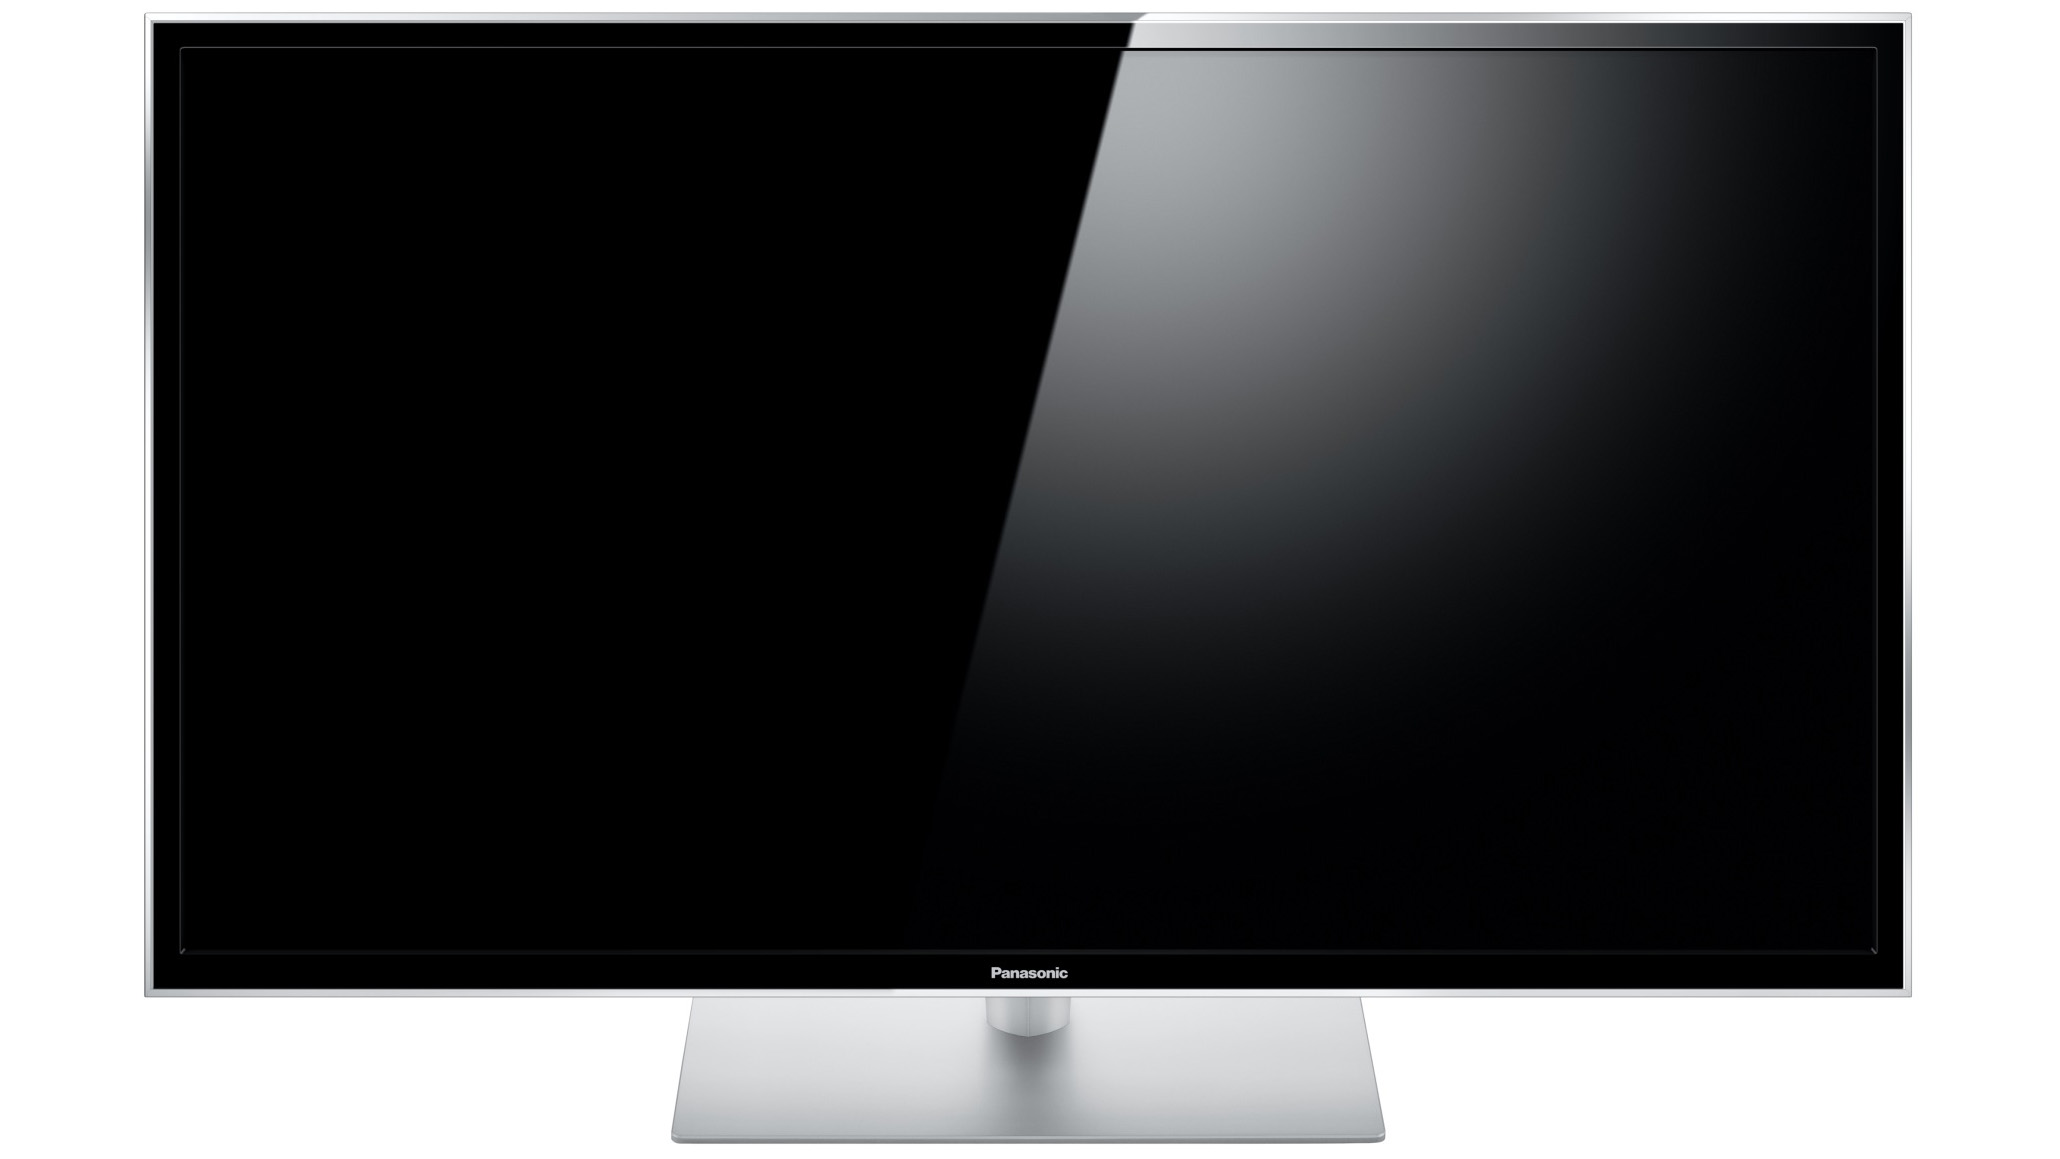 The Best Hdtv To Buy Today Is The Panasonic St60 Tested